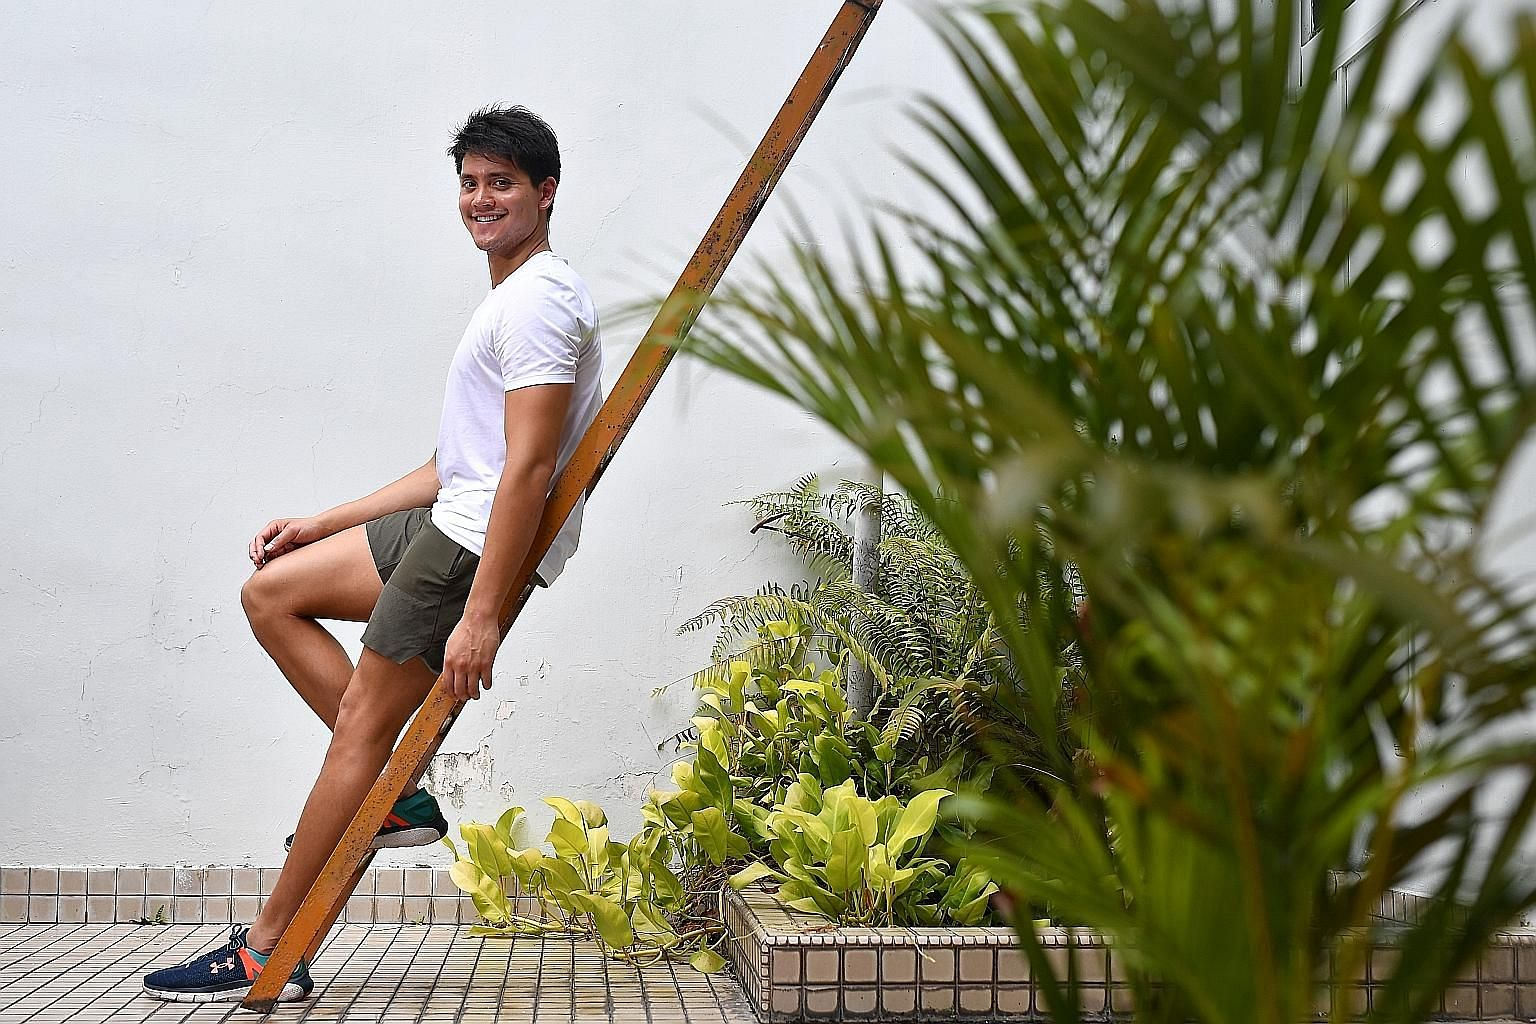 A year older and wiser, Joseph Schooling cannot imagine a life without the pool for the years ahead. If he is not competing, it will always be a place of solace and tranquillity for the Olympic champion. ST FILE PHOTO